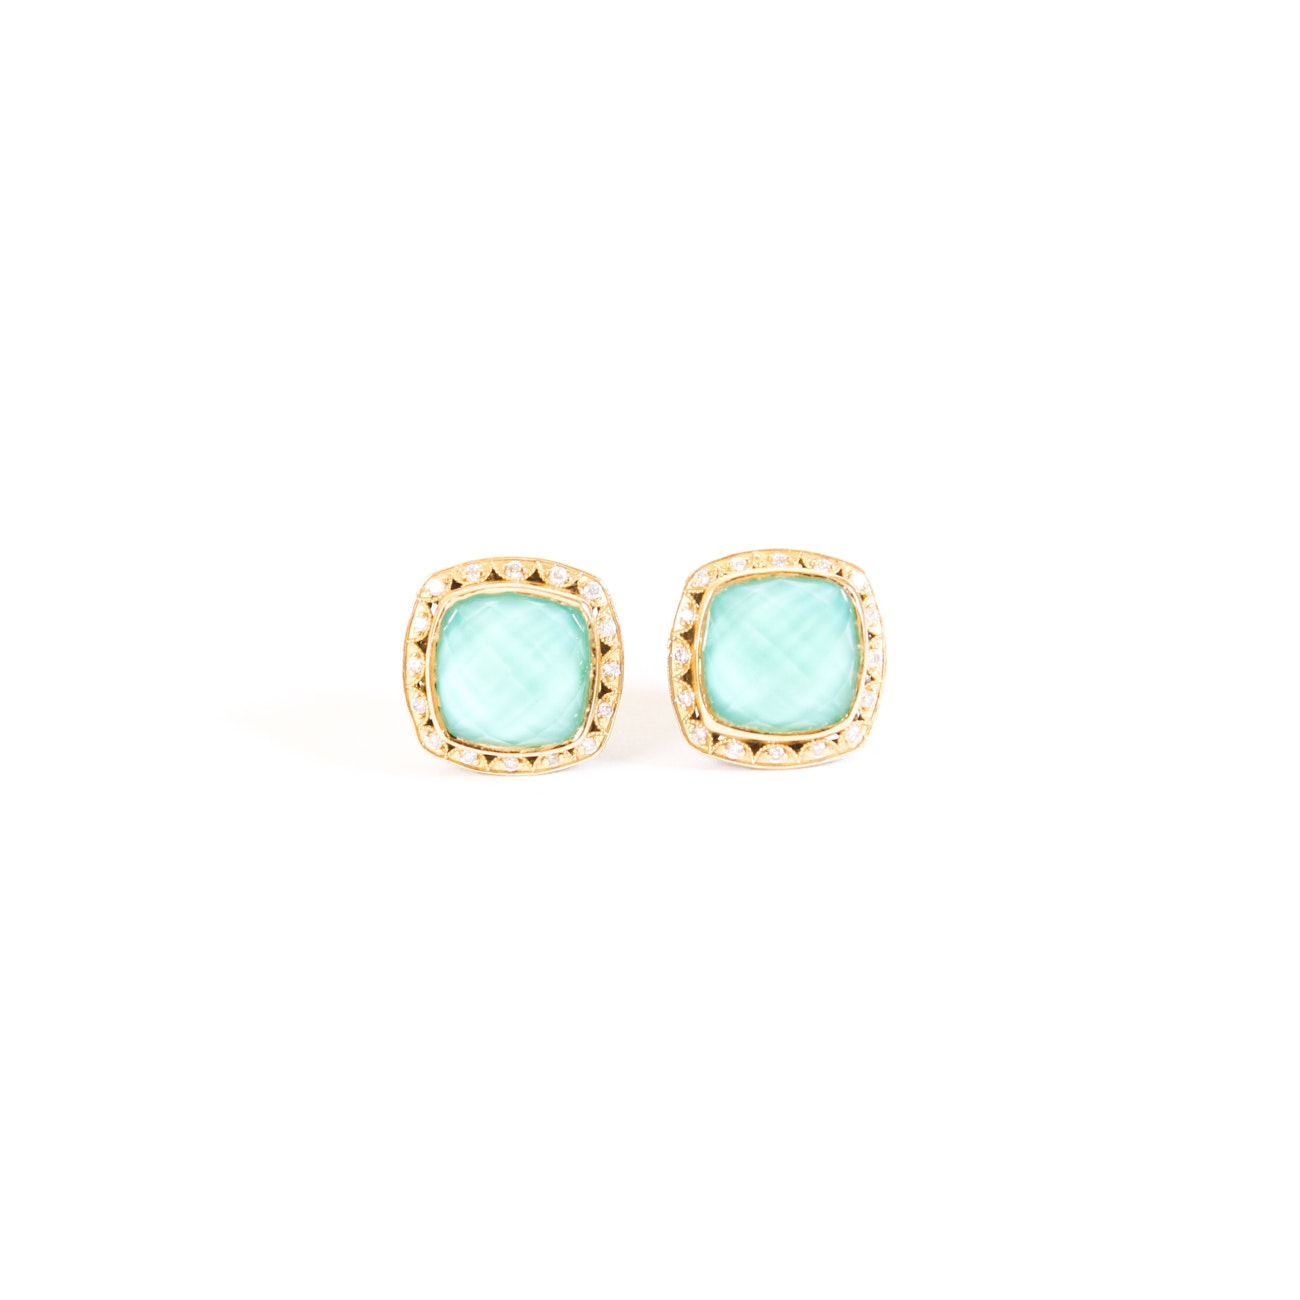 Tacori Sterling Silver Turquoise Quartz and Diamond Earrings